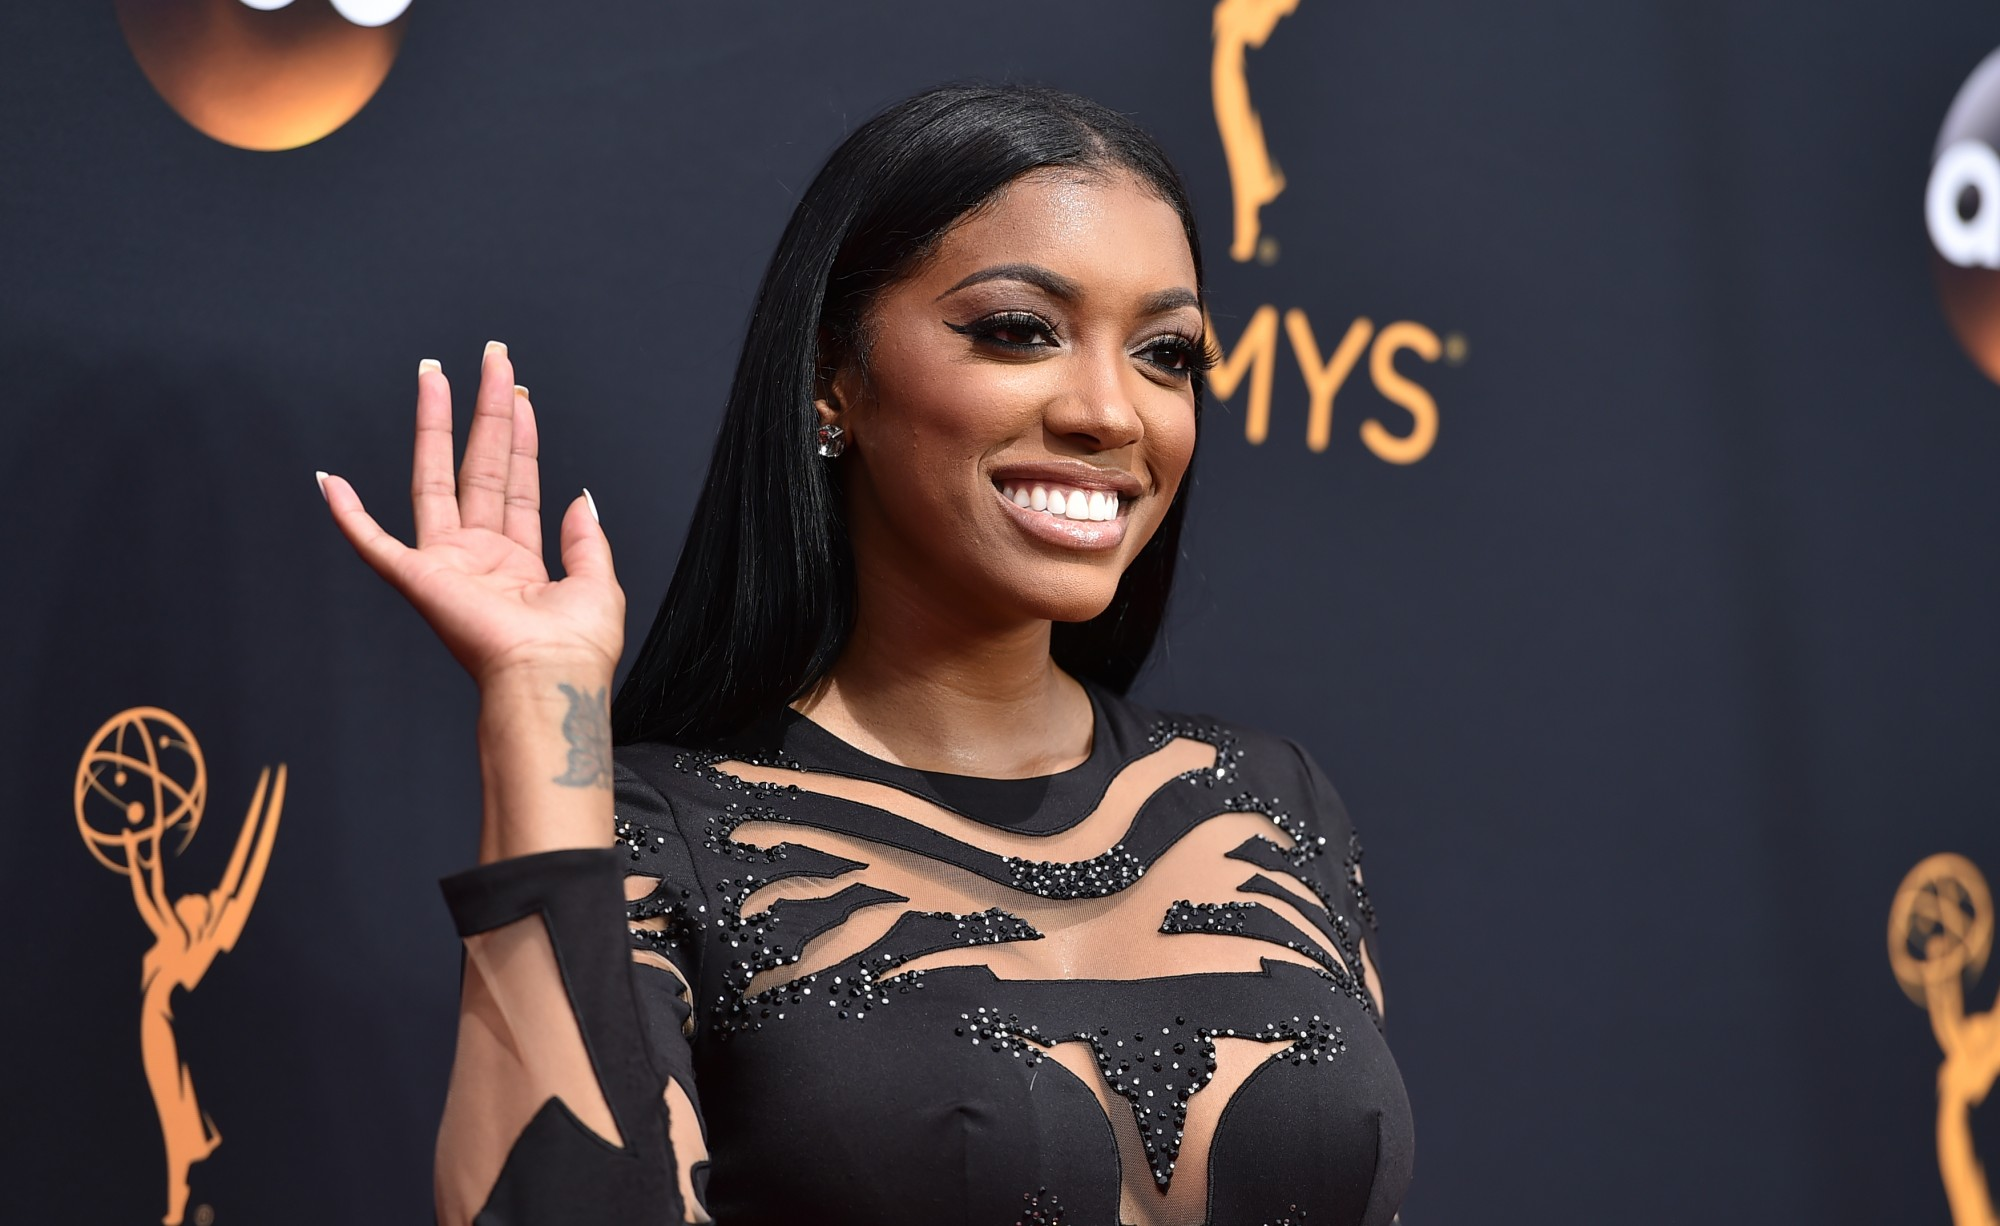 Porsha Williams' Daughter Pilar Jhena Is Twining With Both Her Parents - See The Mazing Photos